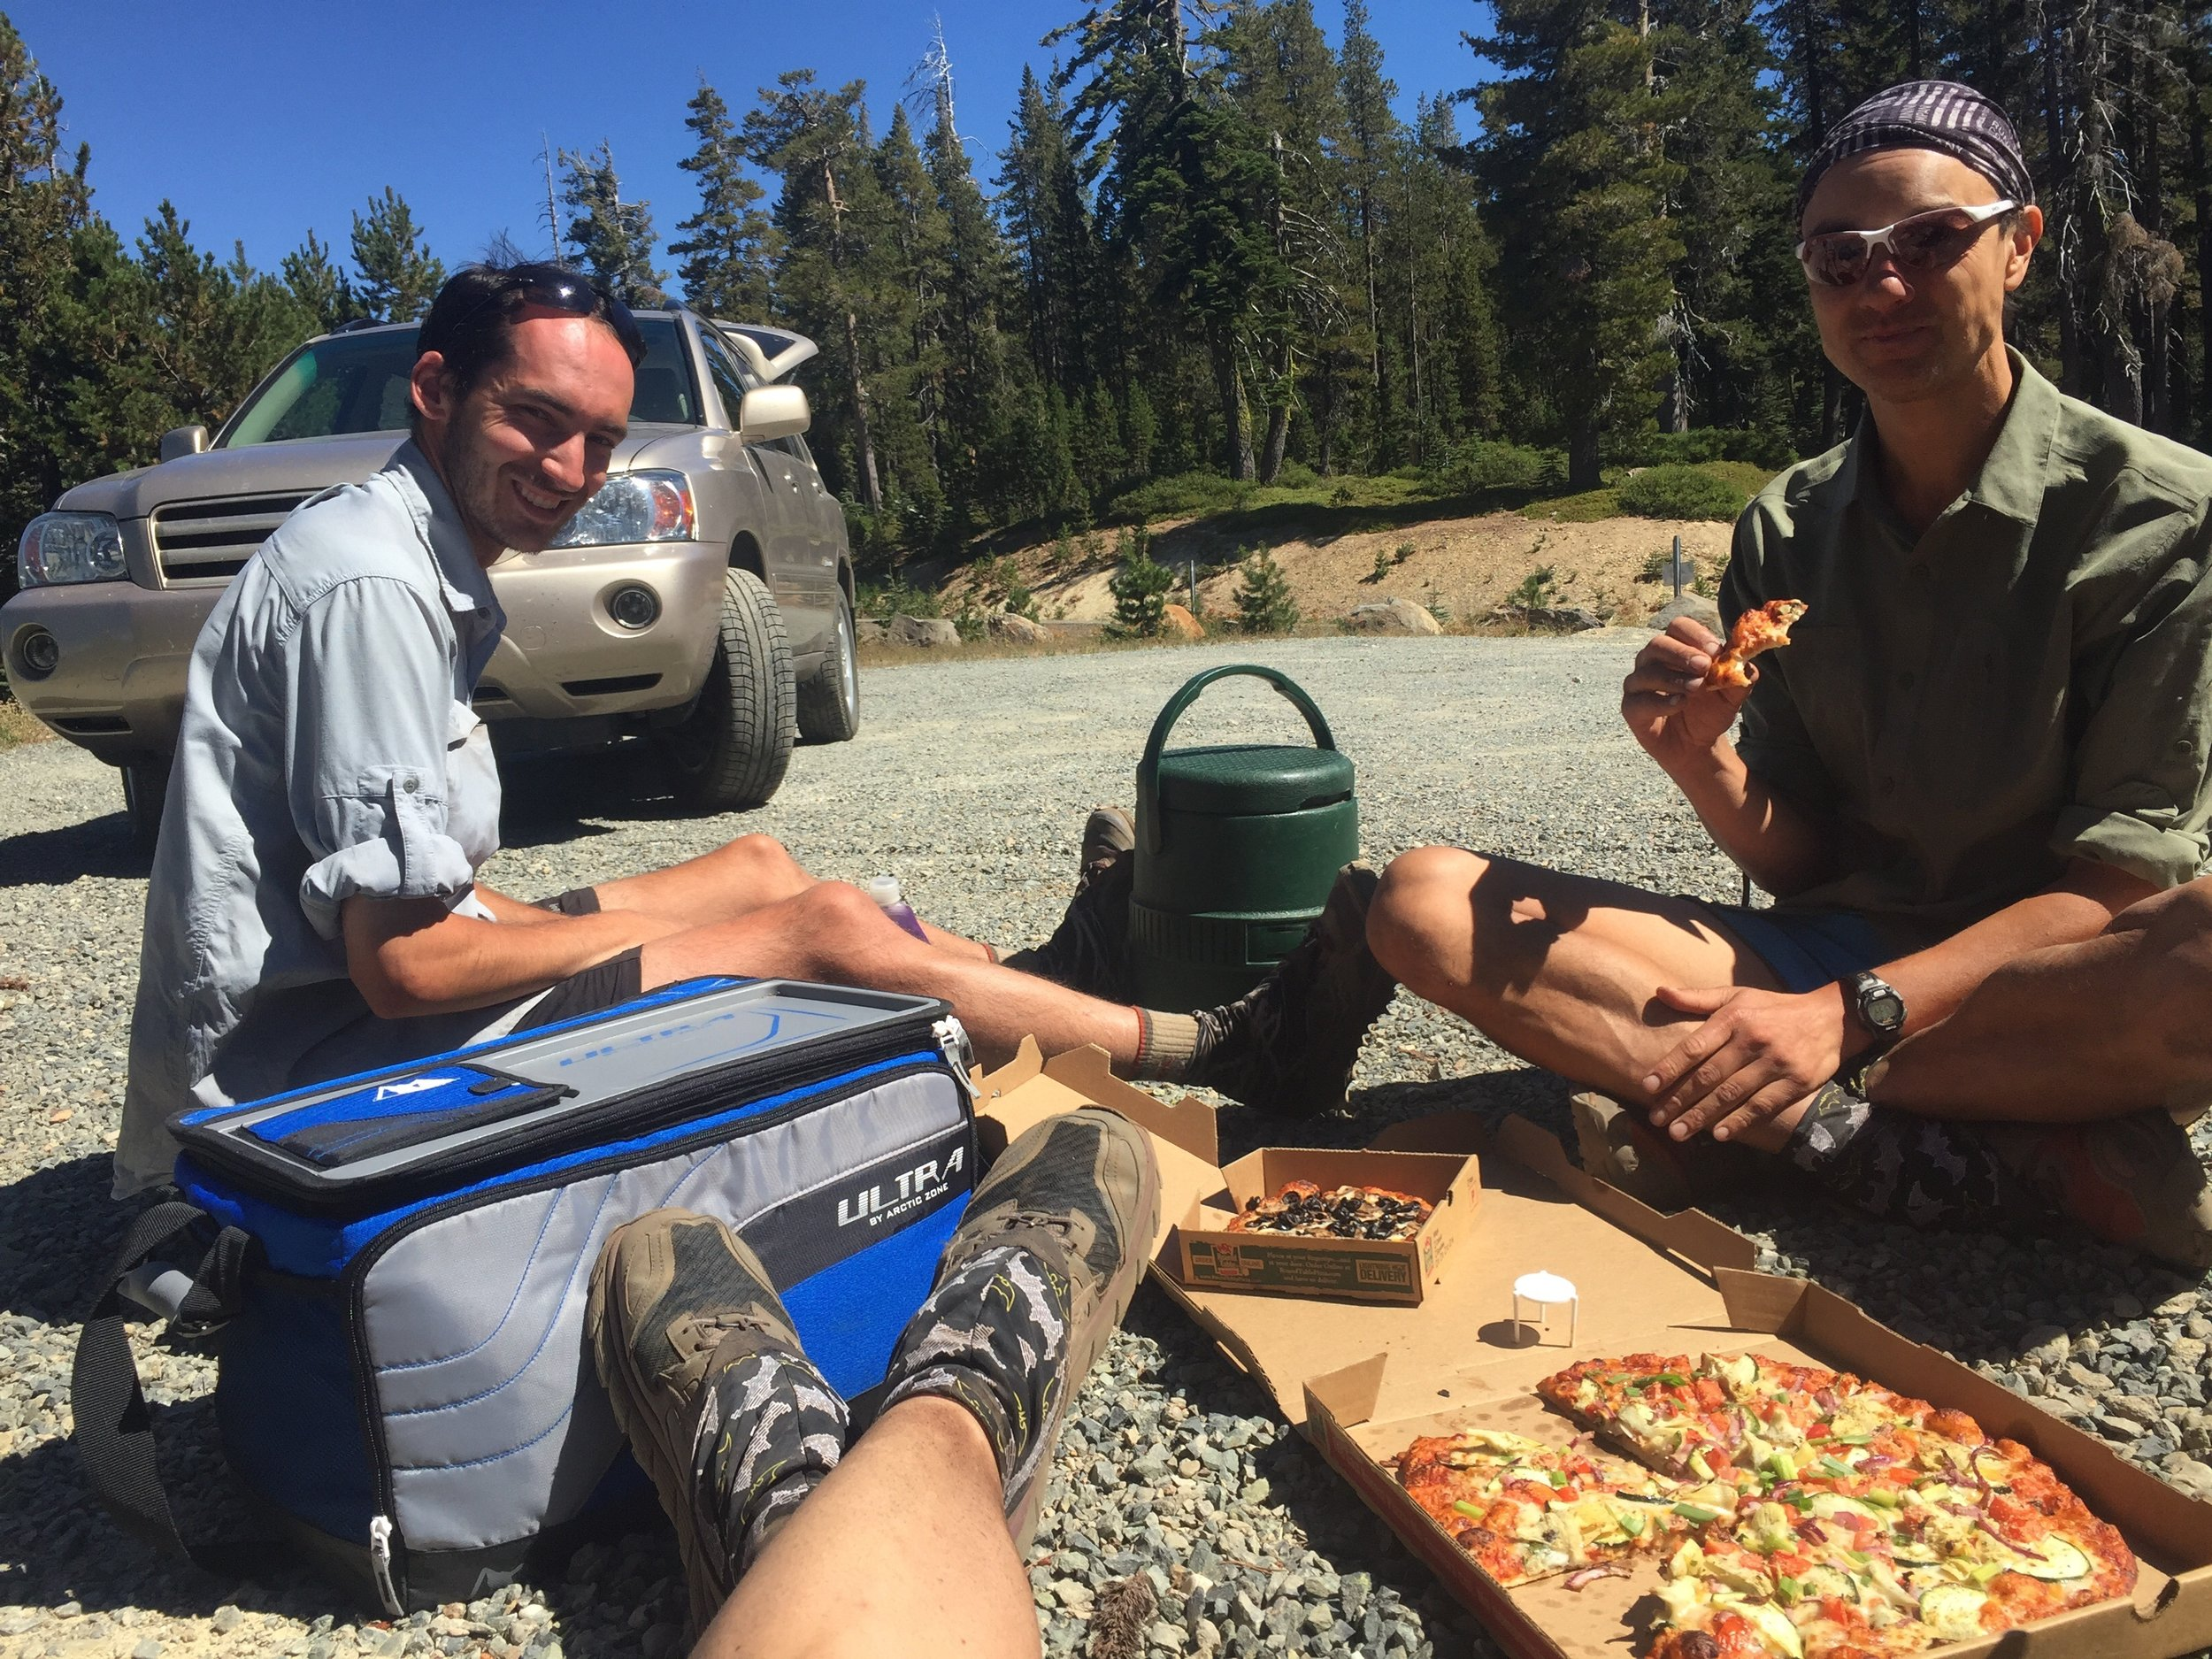 Everyone (Pitbull, Huckleberry's feet, Macro) enjoying the veggie pie on a thru-hiker table aka the ground.